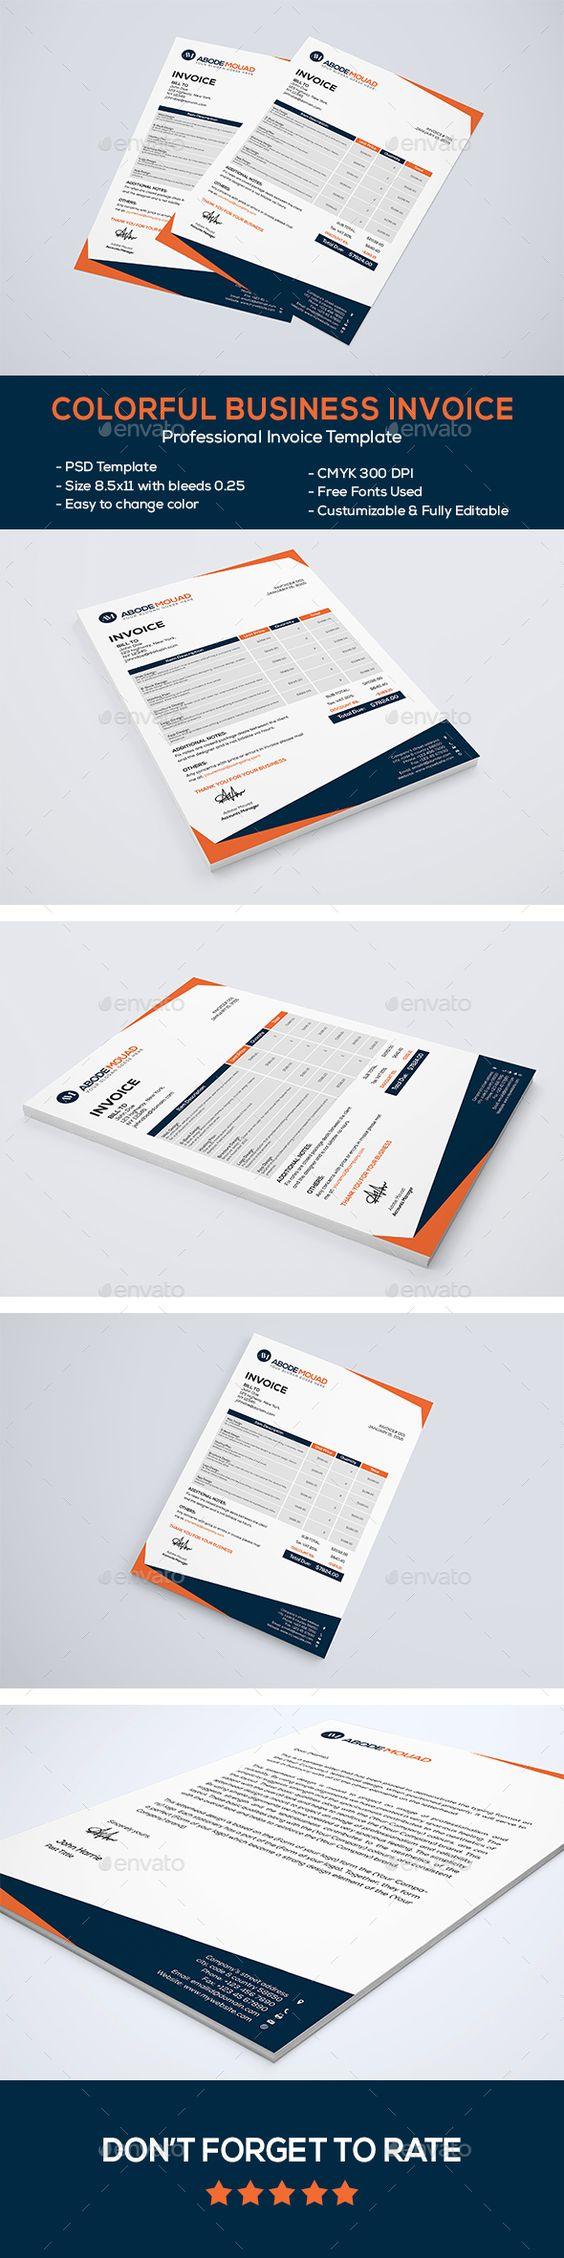 colorful business letterhead | stationery, proposals and letterhead, Invoice examples